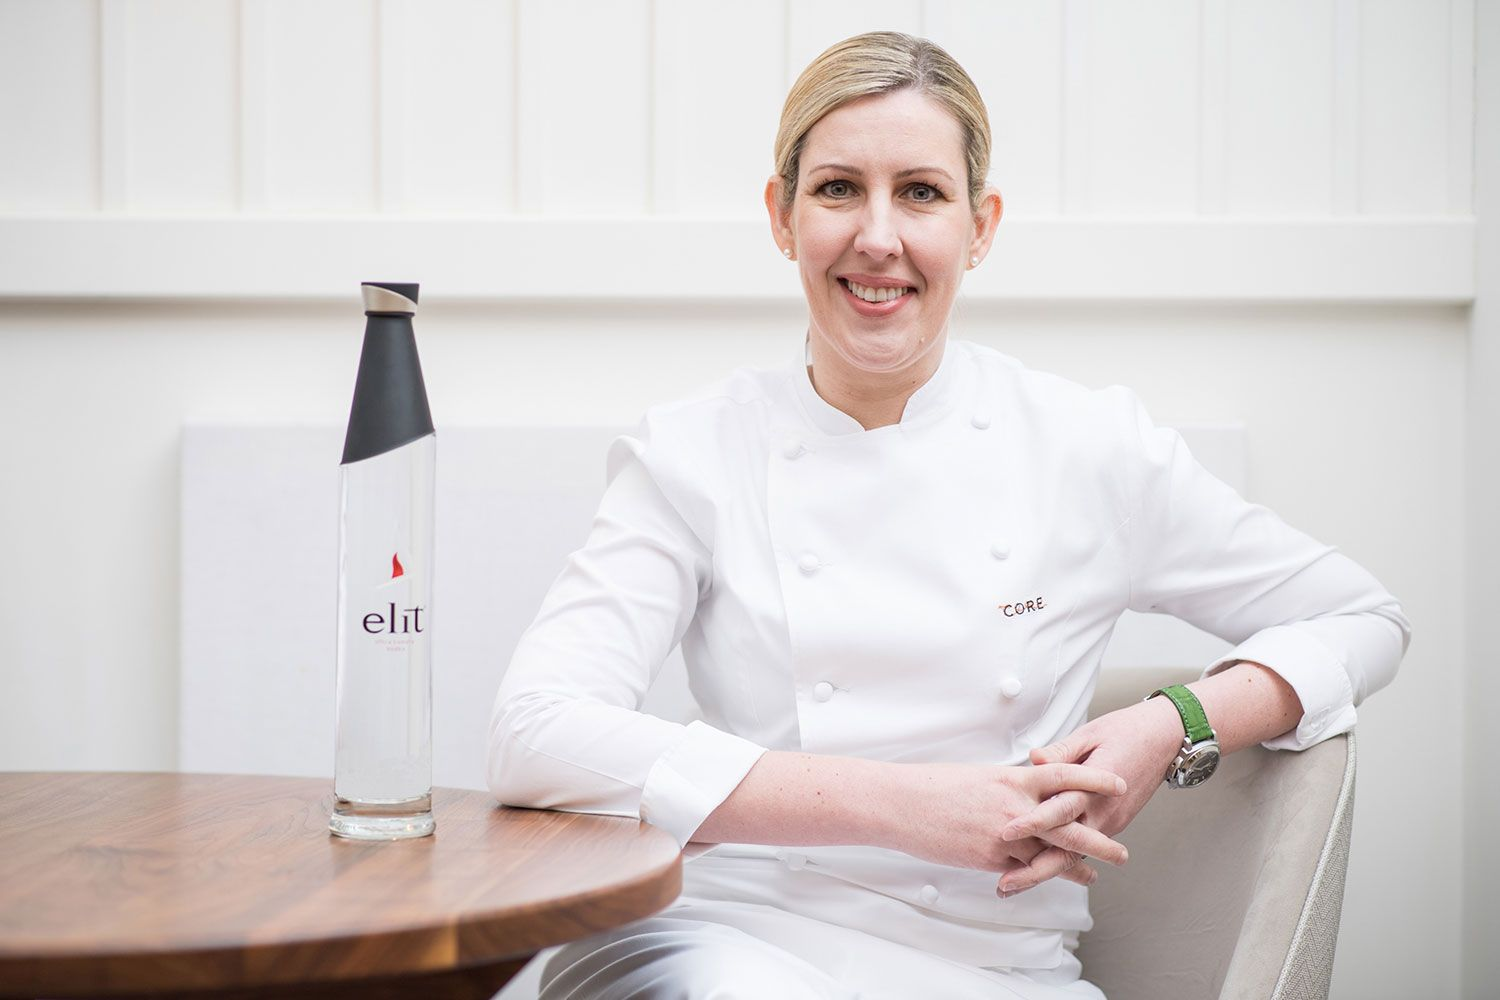 Chef Clare Smyth Named World's Best Female Chef 2018